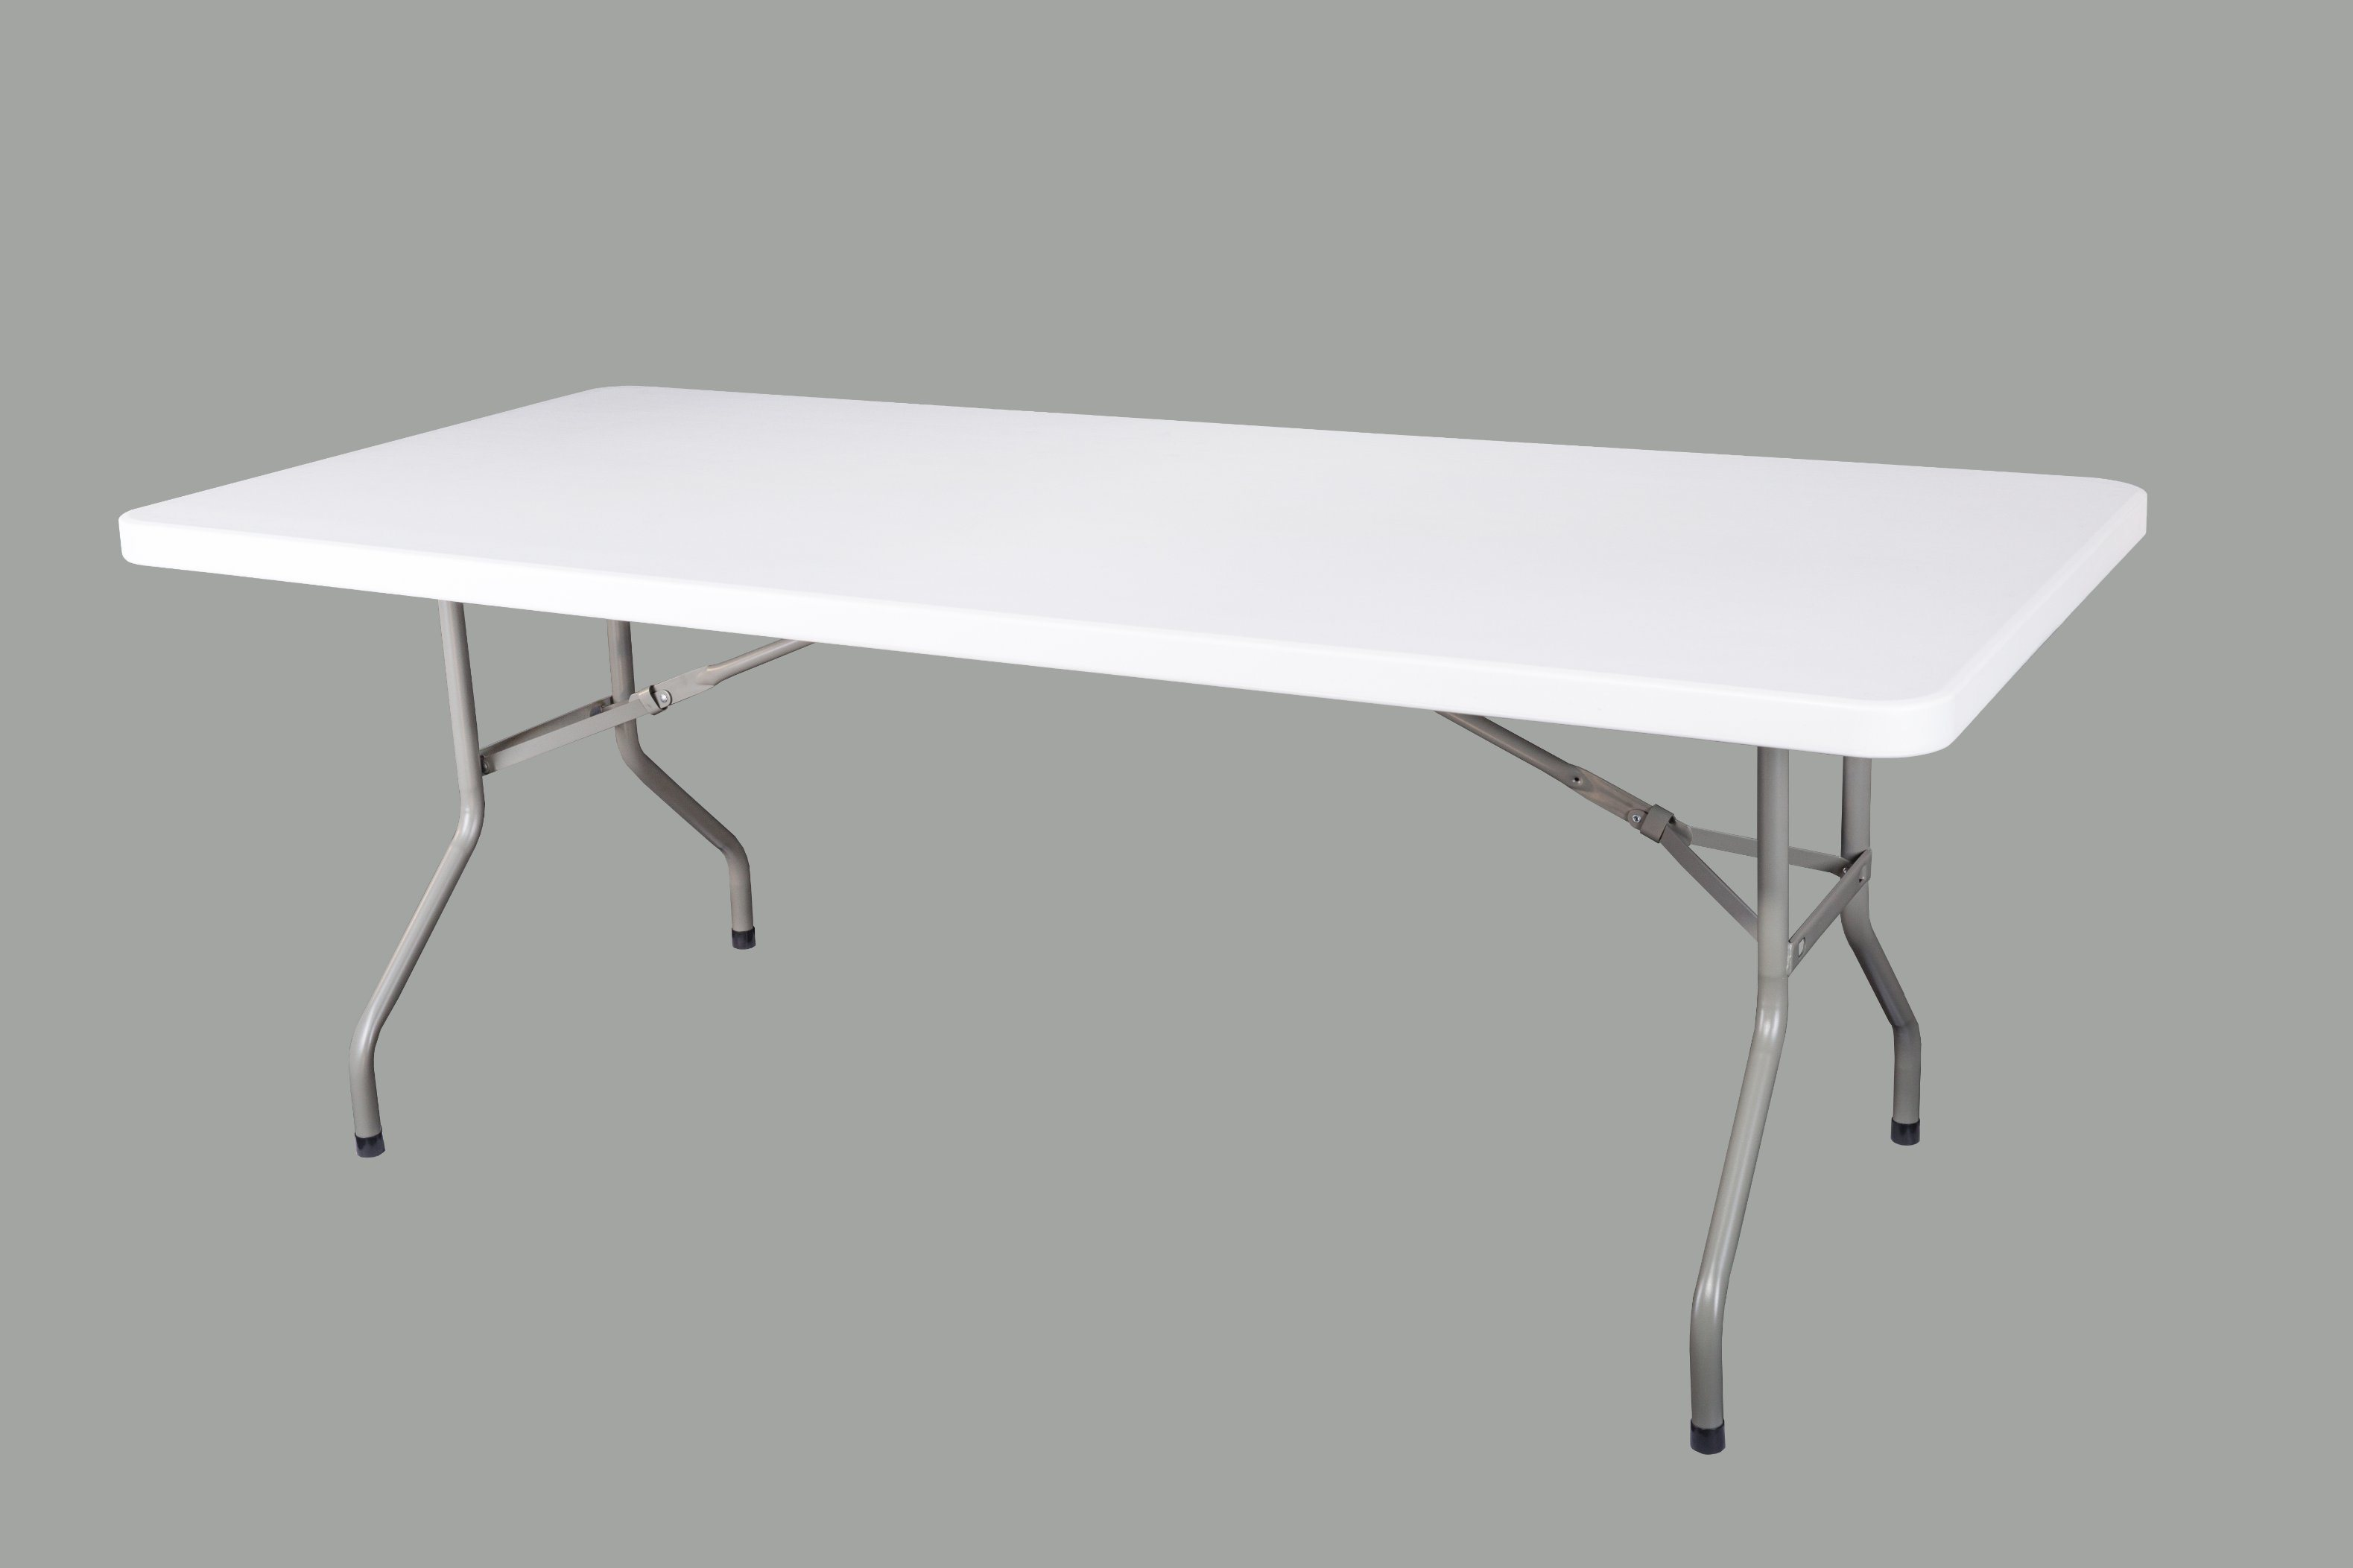 - China 6FT Easy Catering Plastic Folding Table - China Outdoor